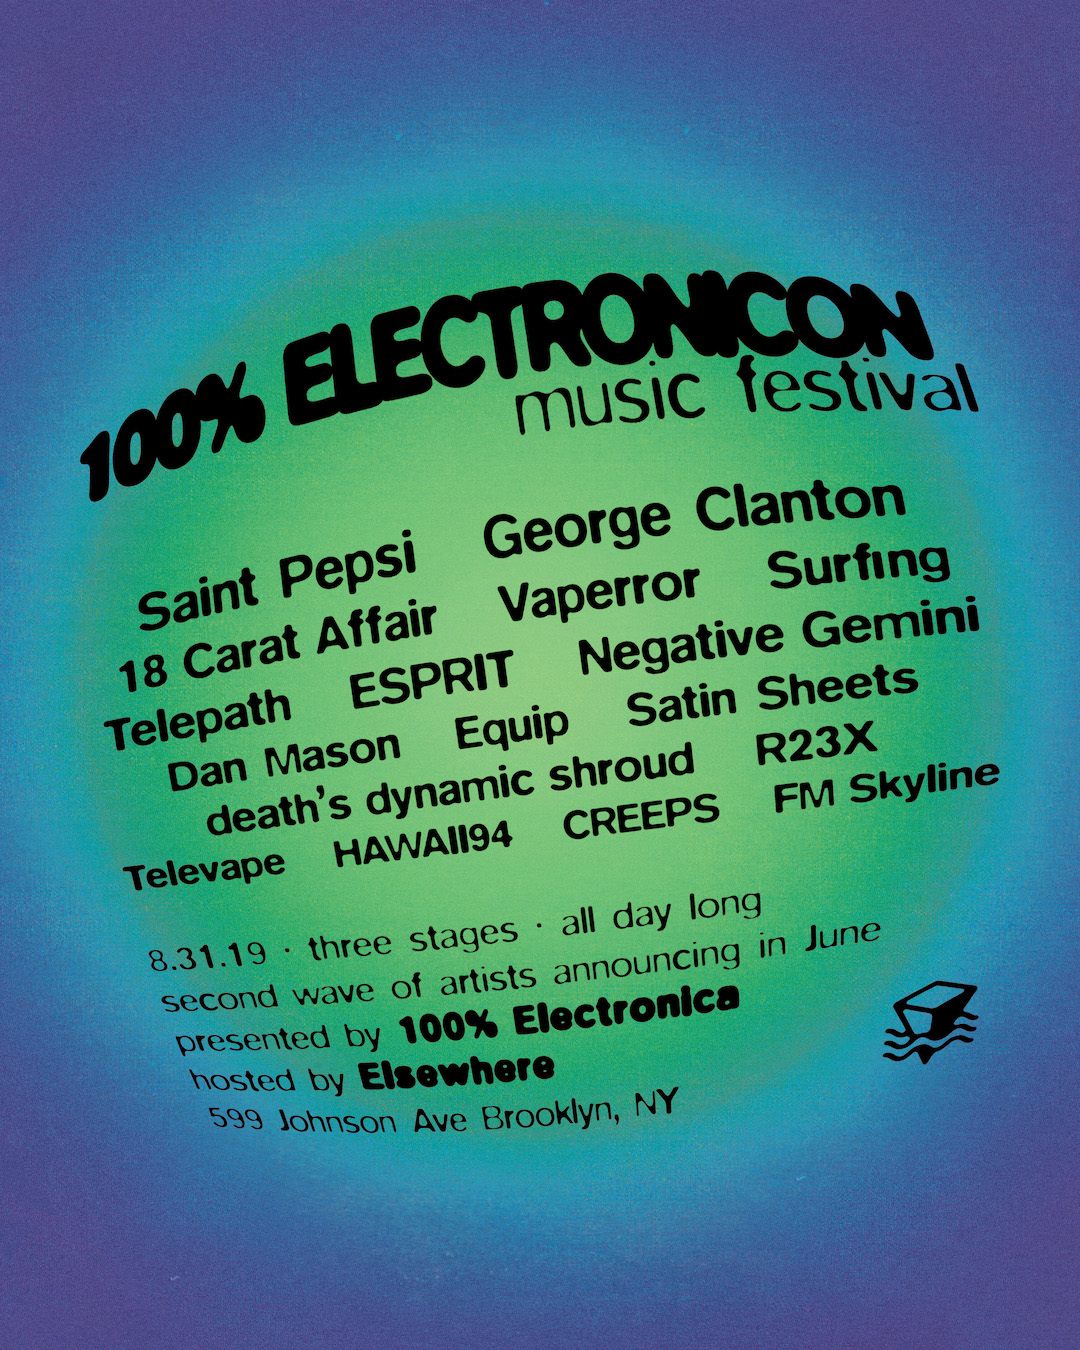 electronicon.jpg